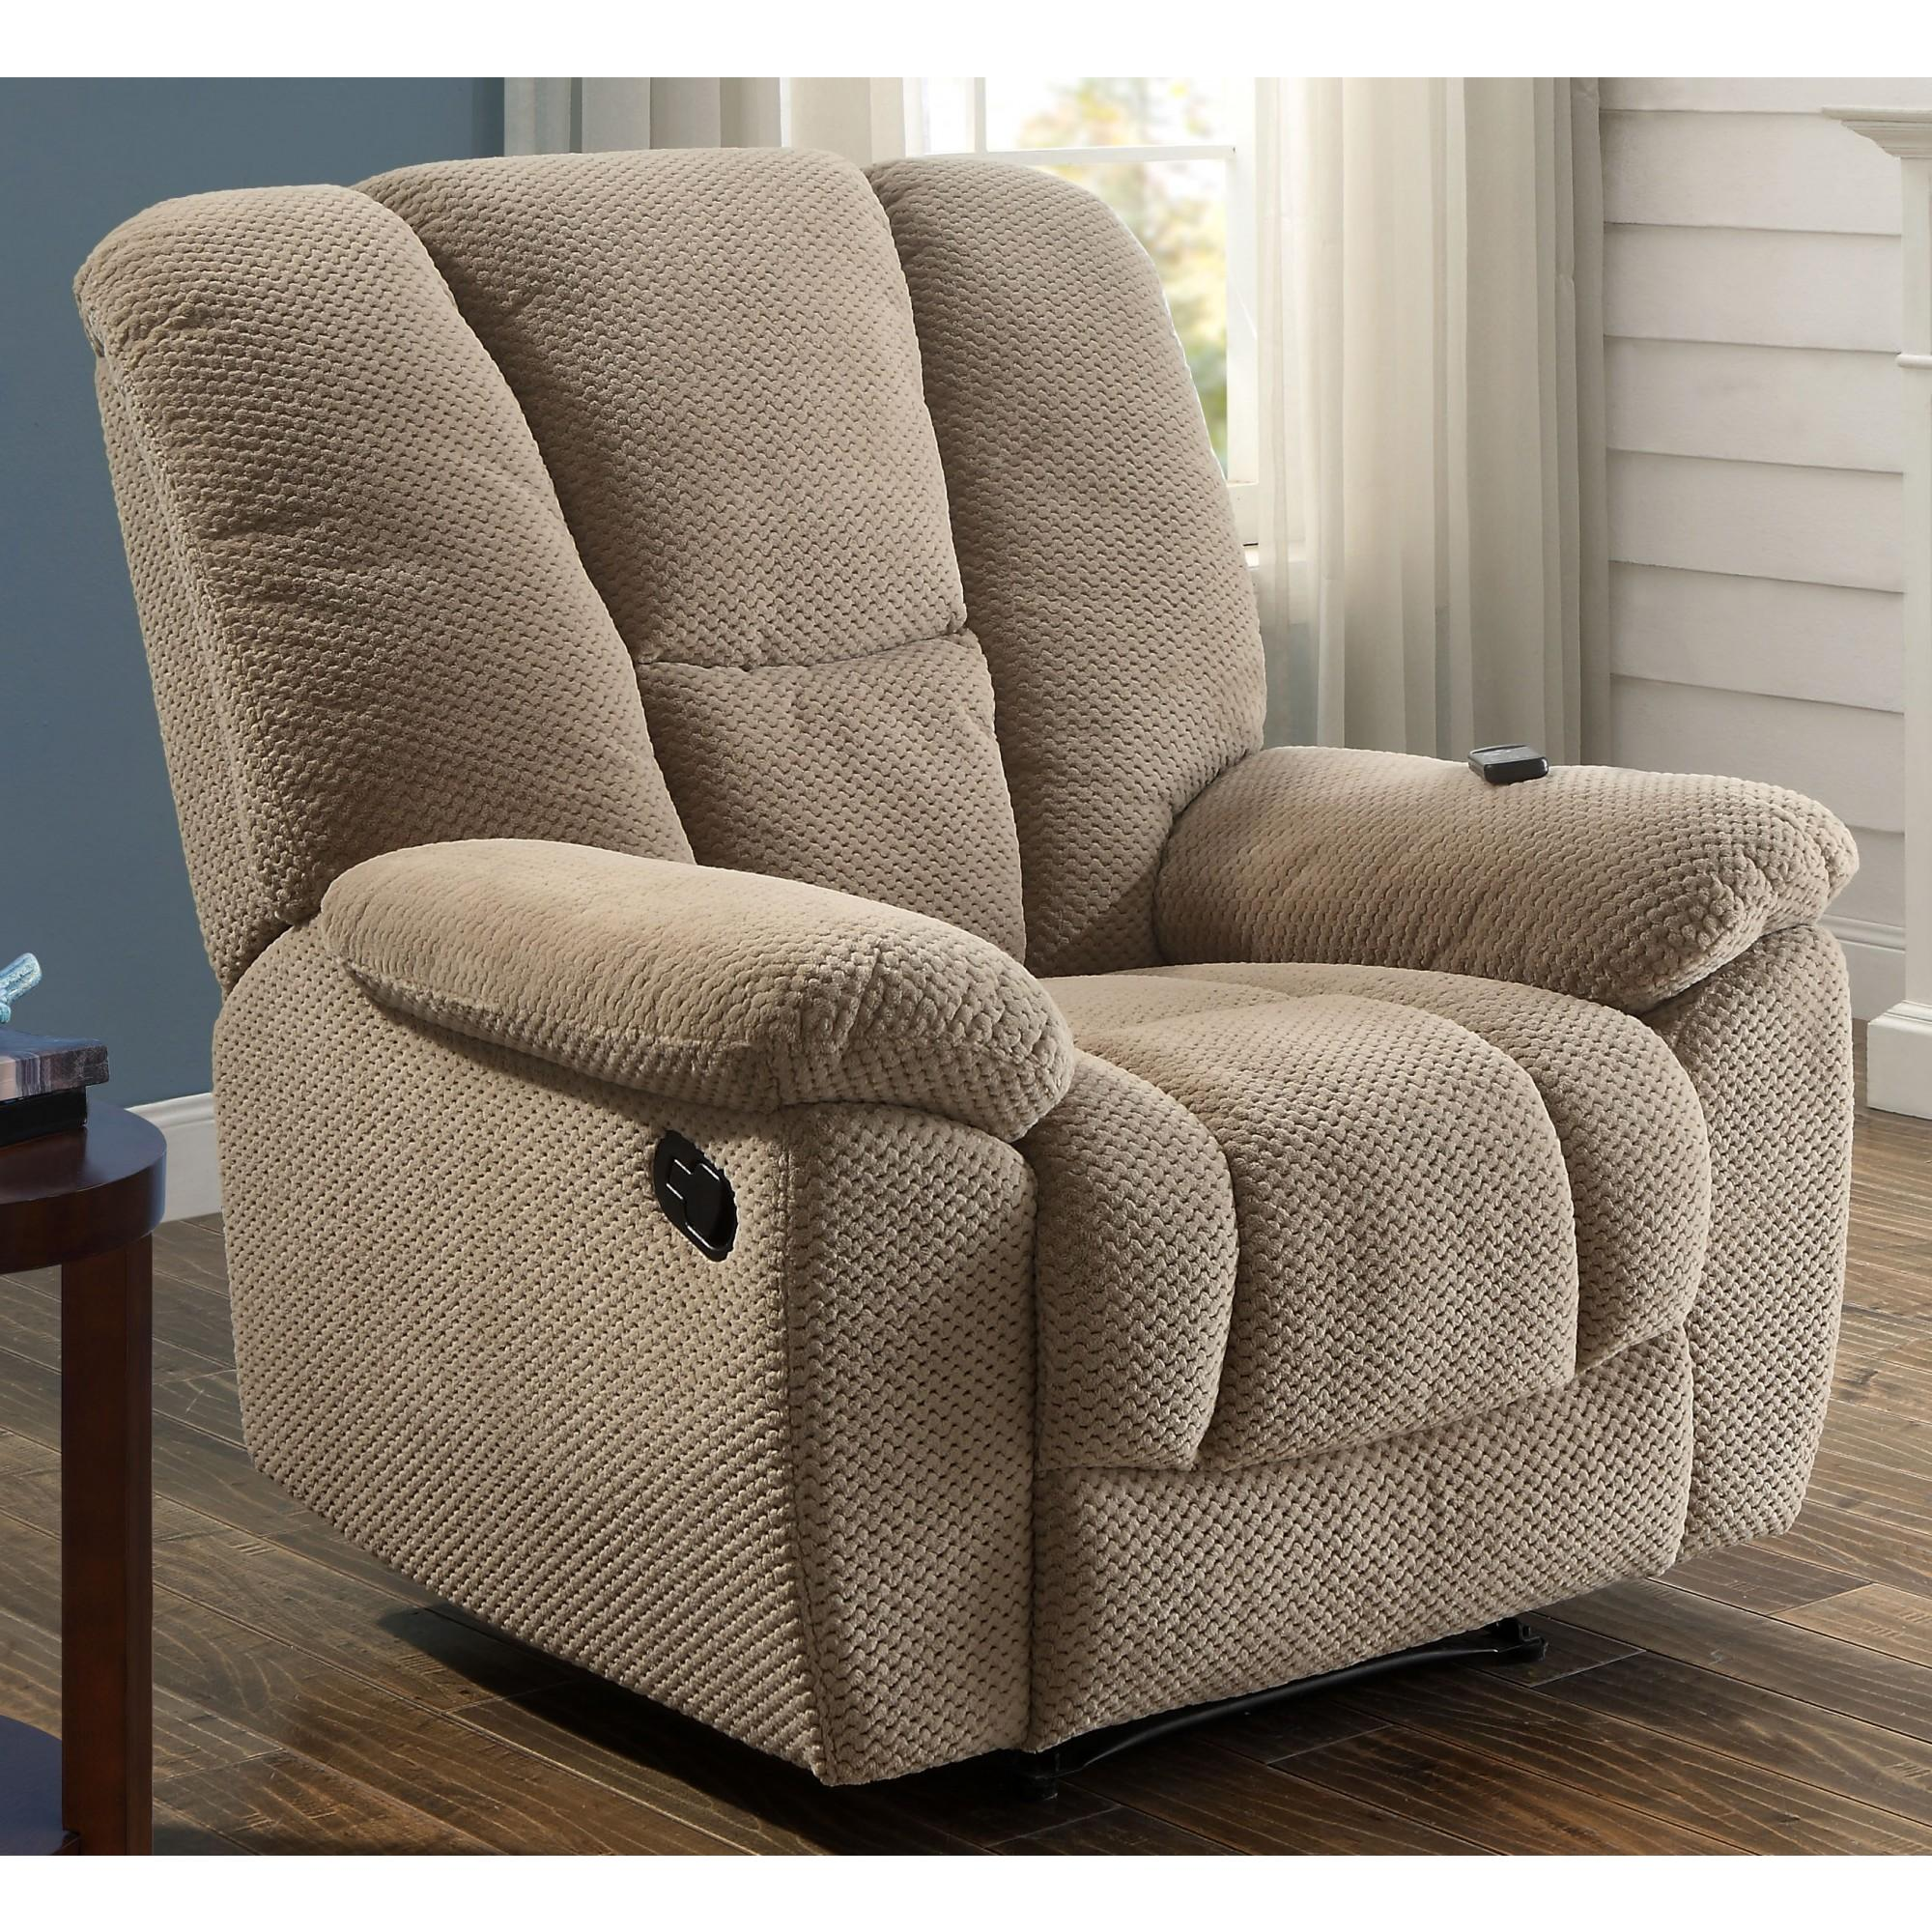 Serta Big u0026 Tall Memory Foam Massage Recliner with USB Charging Beige & Serta Big u0026 Tall Memory Foam Massage Recliner with USB Charging ... islam-shia.org